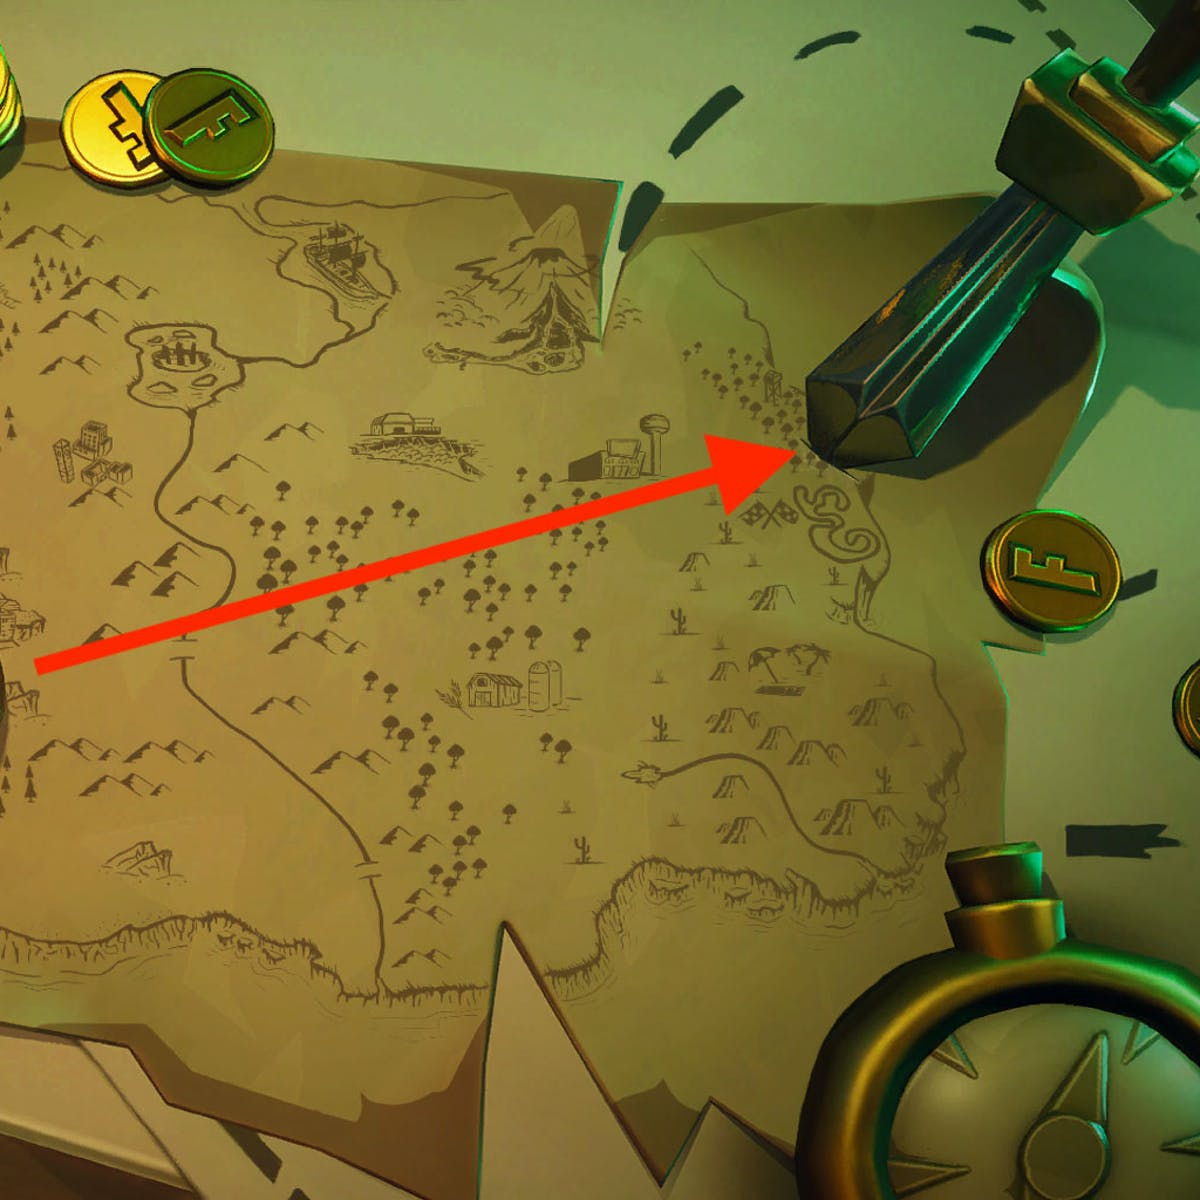 fortnite treasure map loading screen location where the knife points inverse - fortnite knife loading screen location